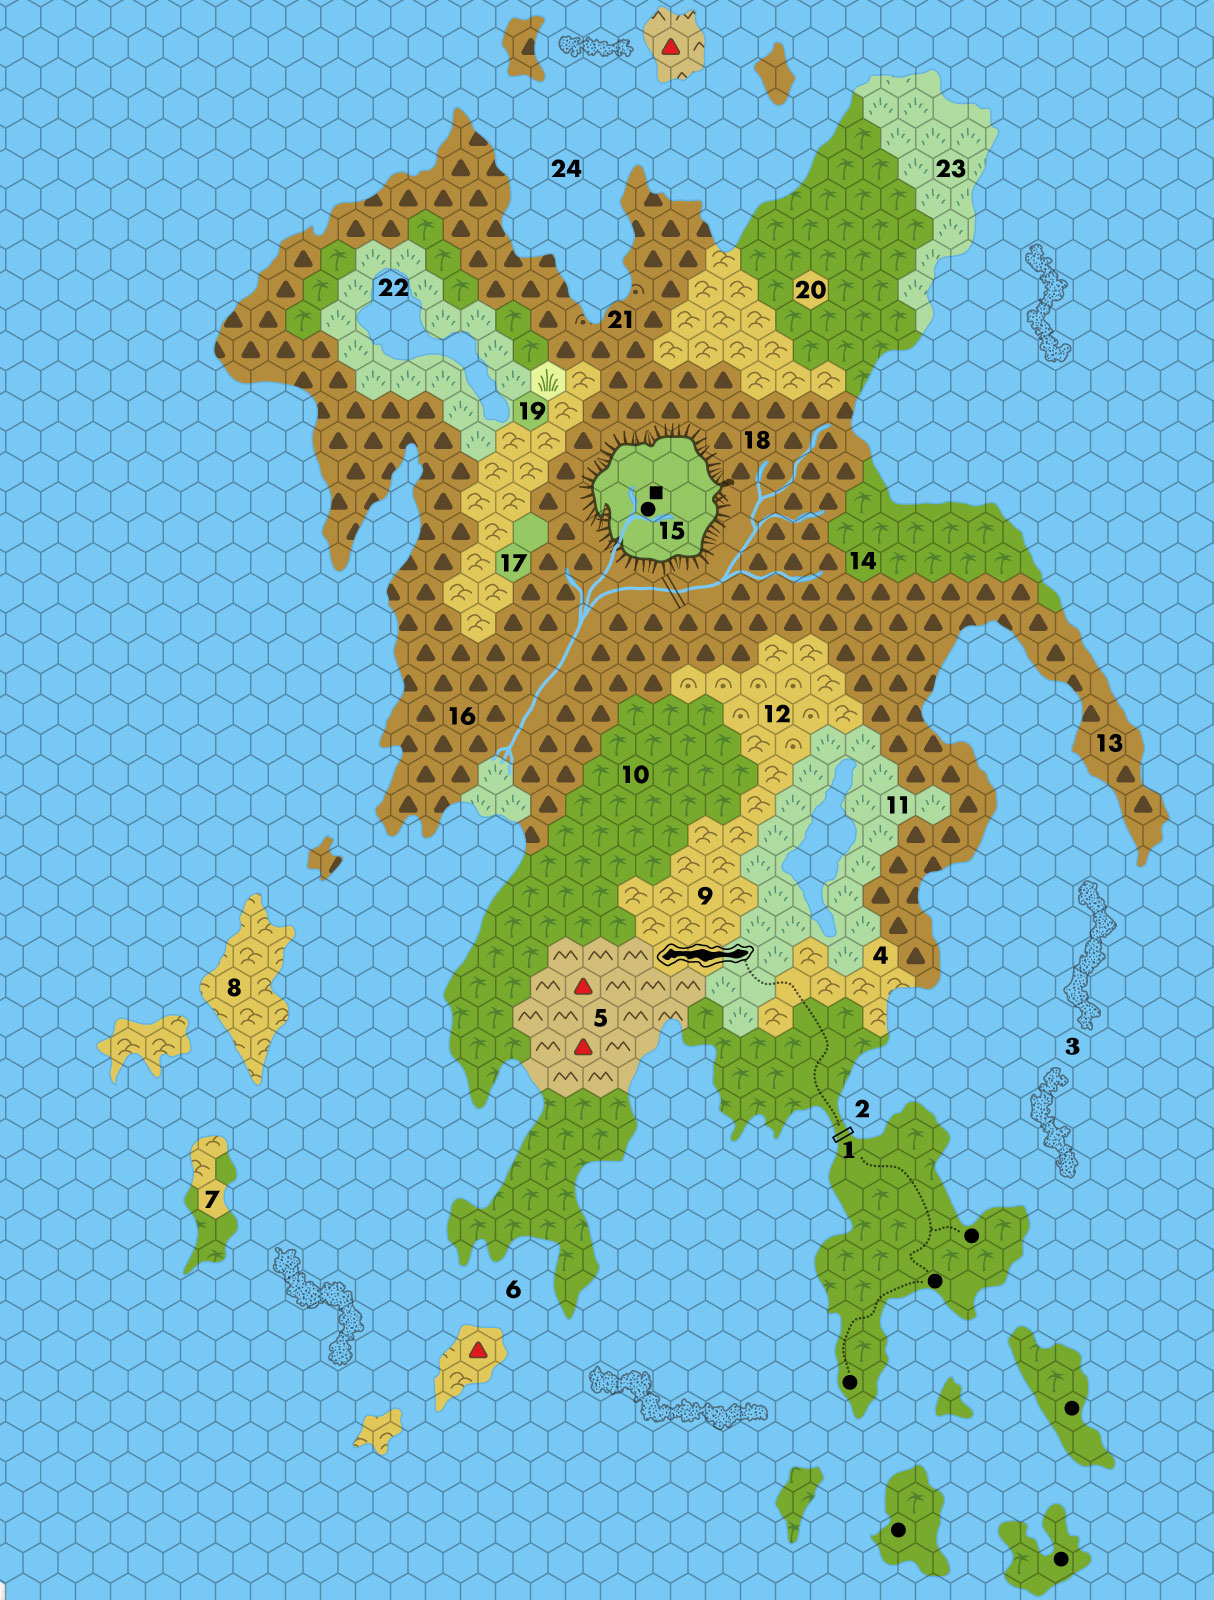 Let's Map Mystara 1981 II